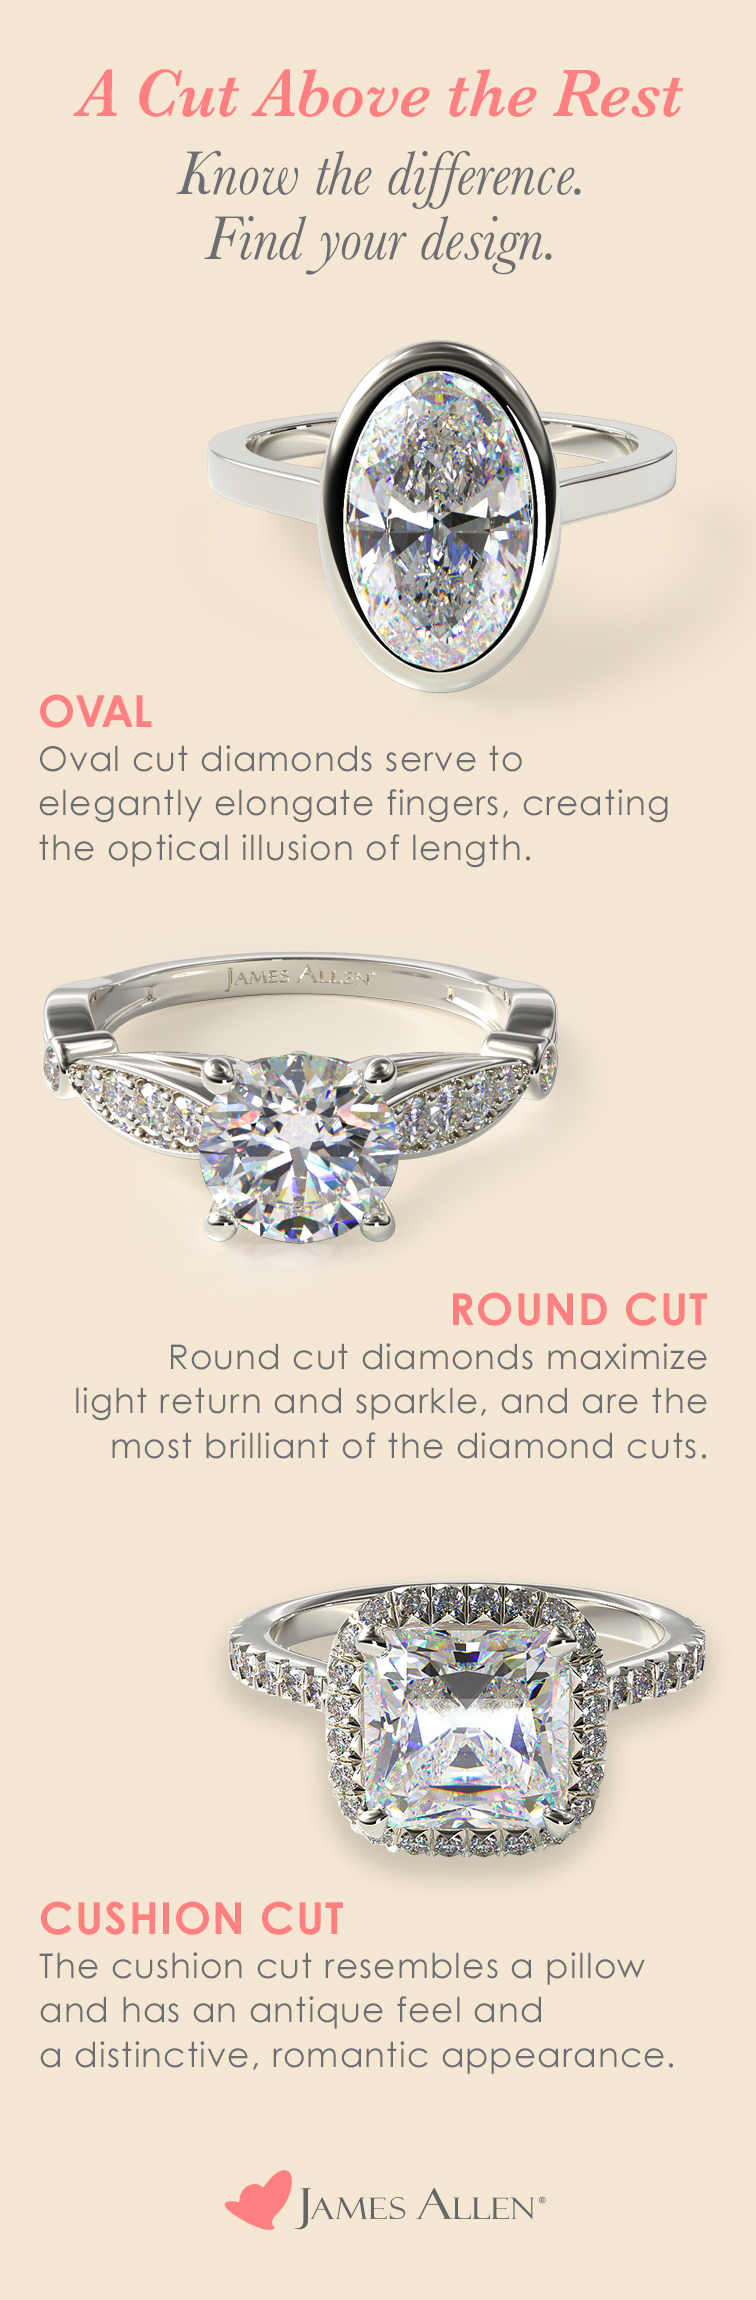 At James Allen Education About The Diffe Types Of Diamonds And Cuts Is Held In High Regard We Want You To Know What Look For A Diamond